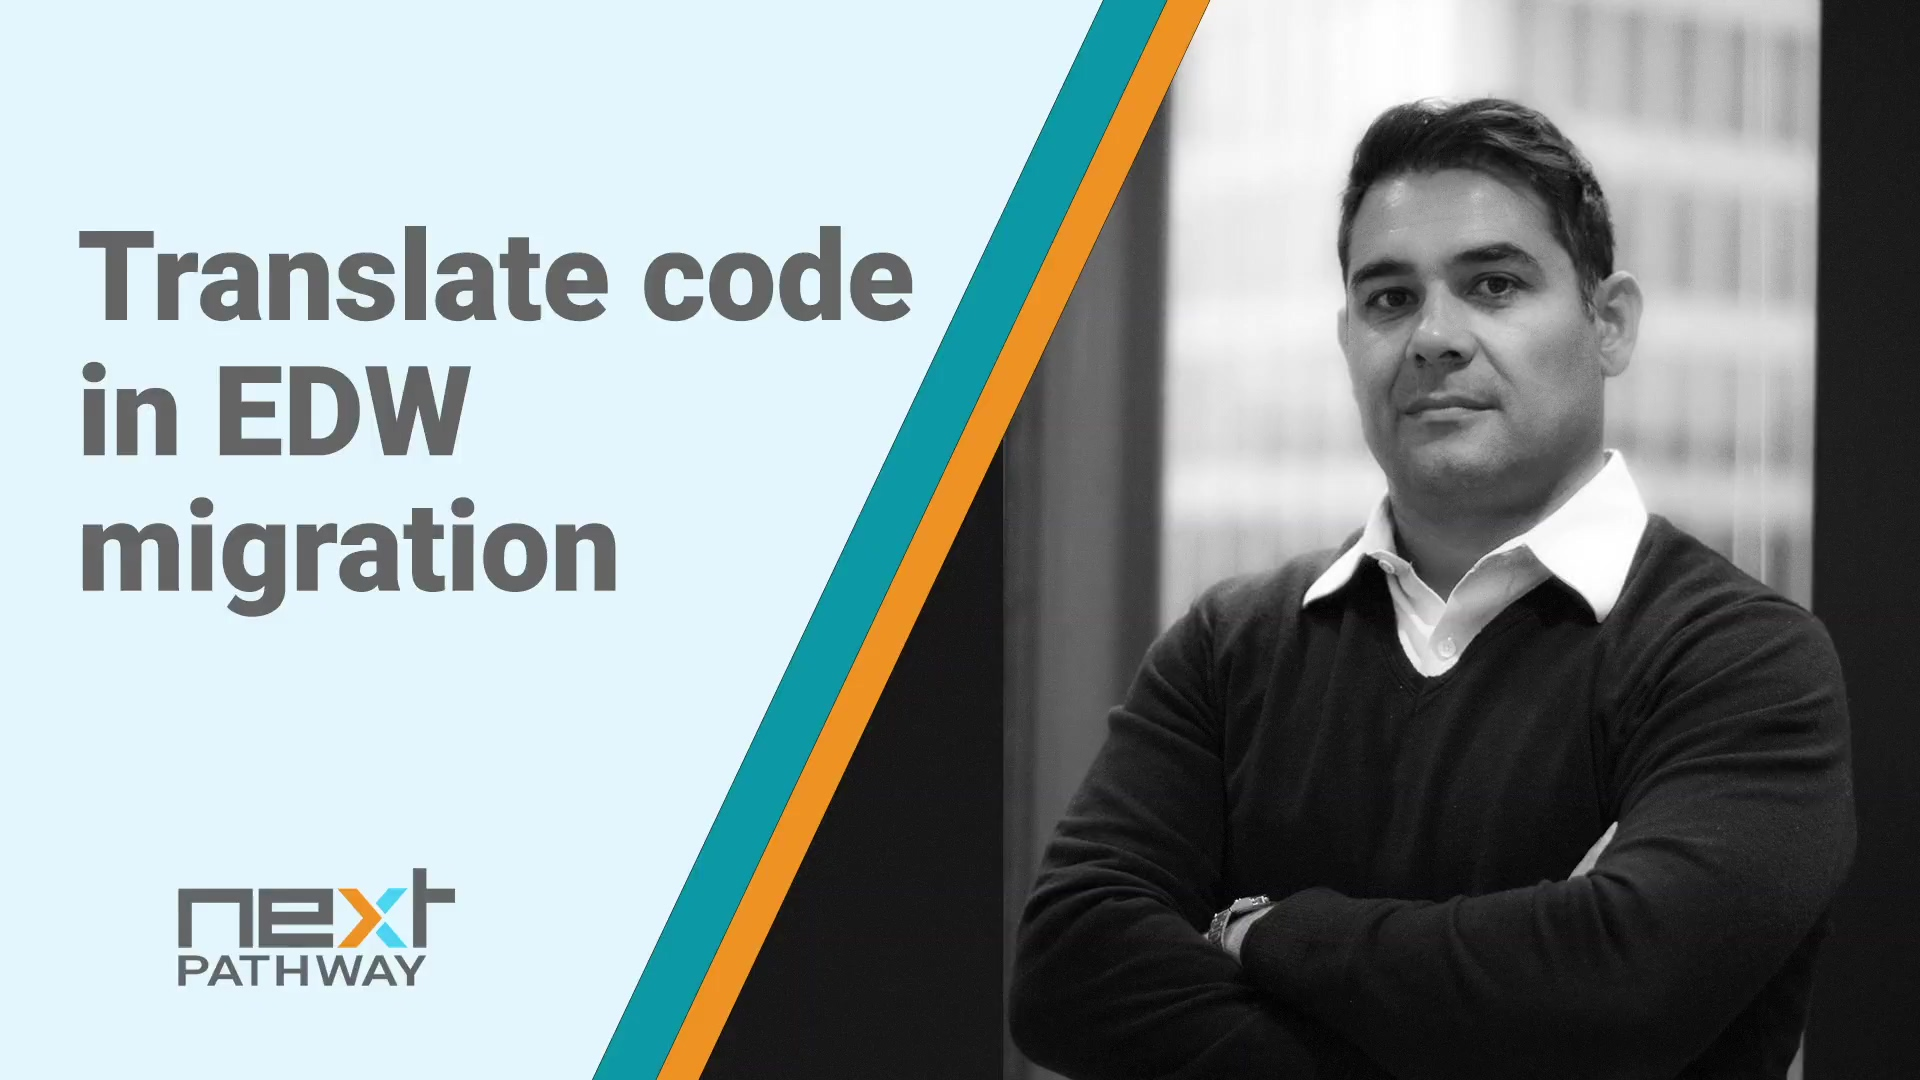 QNA_Tamer_Why translate code in an EDW migration